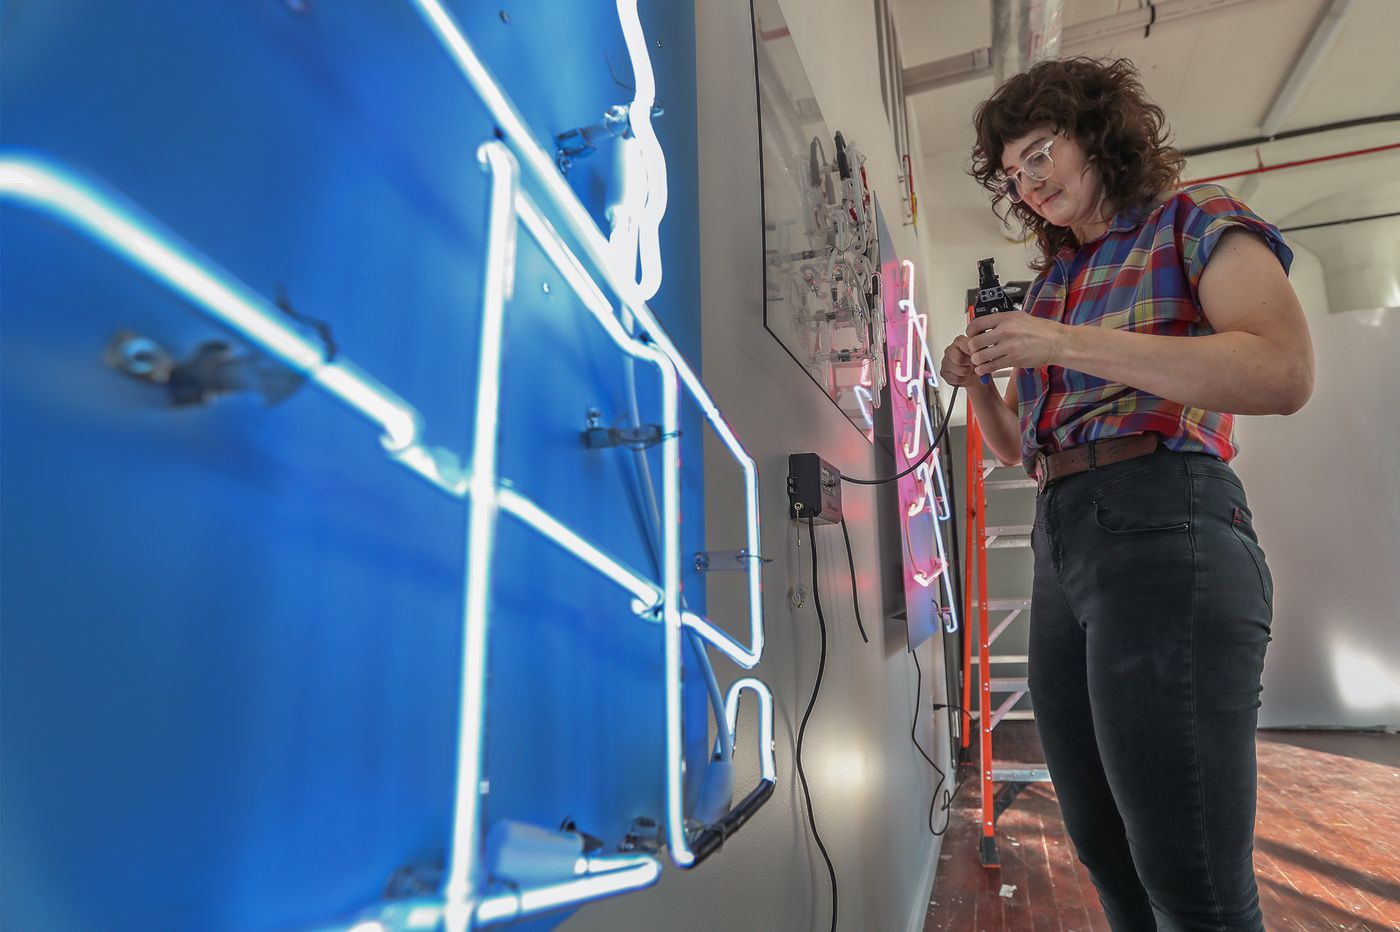 Her mentor spent his final years training her. Now, this neon artist is forging her own path.